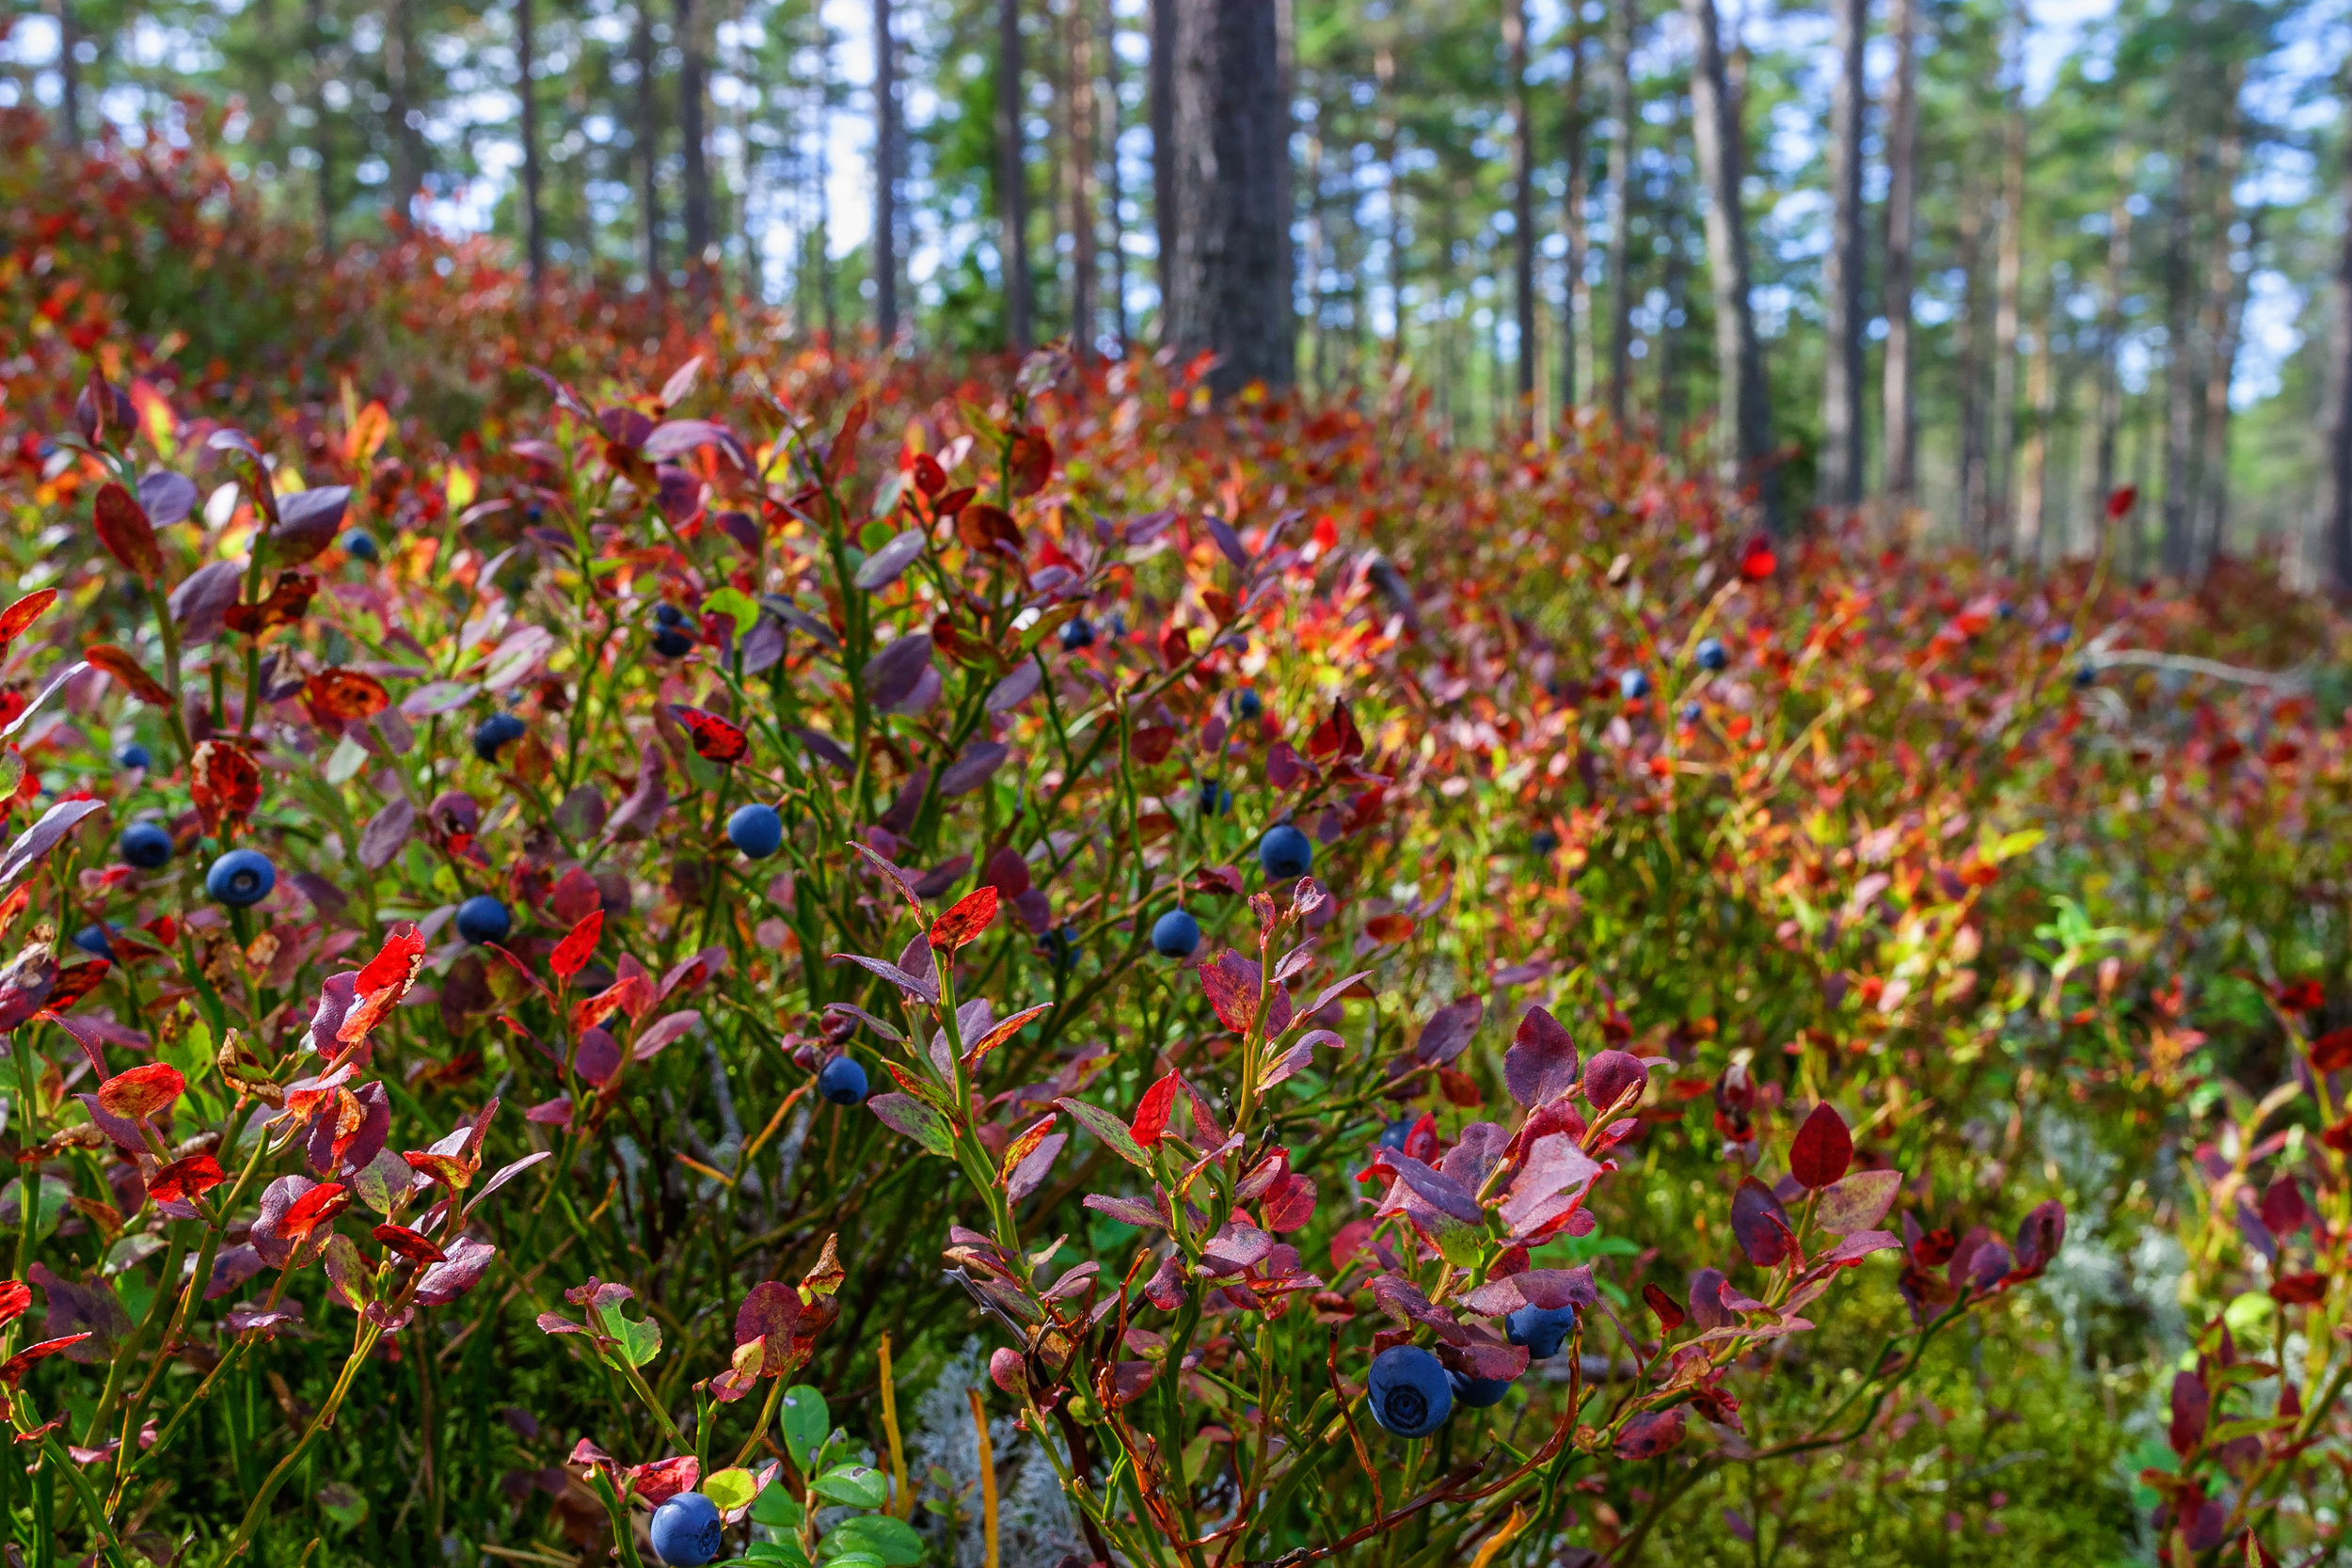 Blueberry bushes in the fall add color to the landscape. Their spring blossoms are beautiful and they're easy to maintain. The berries are the bonus. Even if you decide the birds can have them, they're worth the real estate in your landscape.